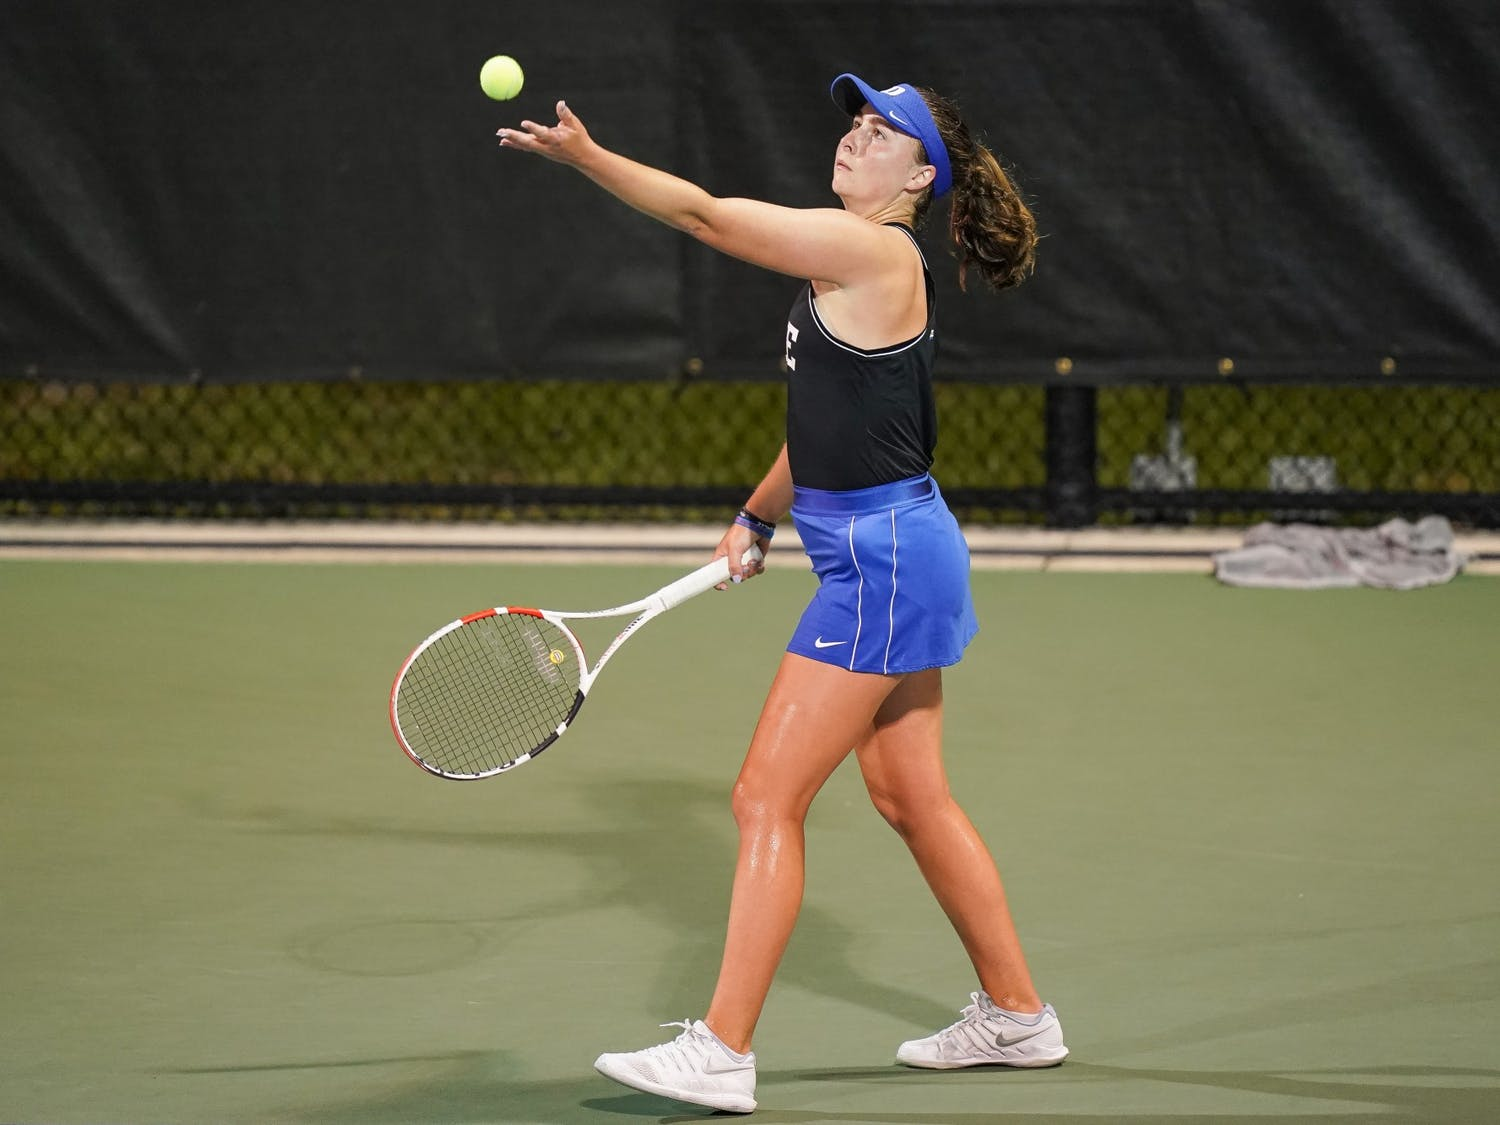 Sophomore Chloe Beck won her singles match, but Duke still couldn't knock off the top-seeded Tar Heels.